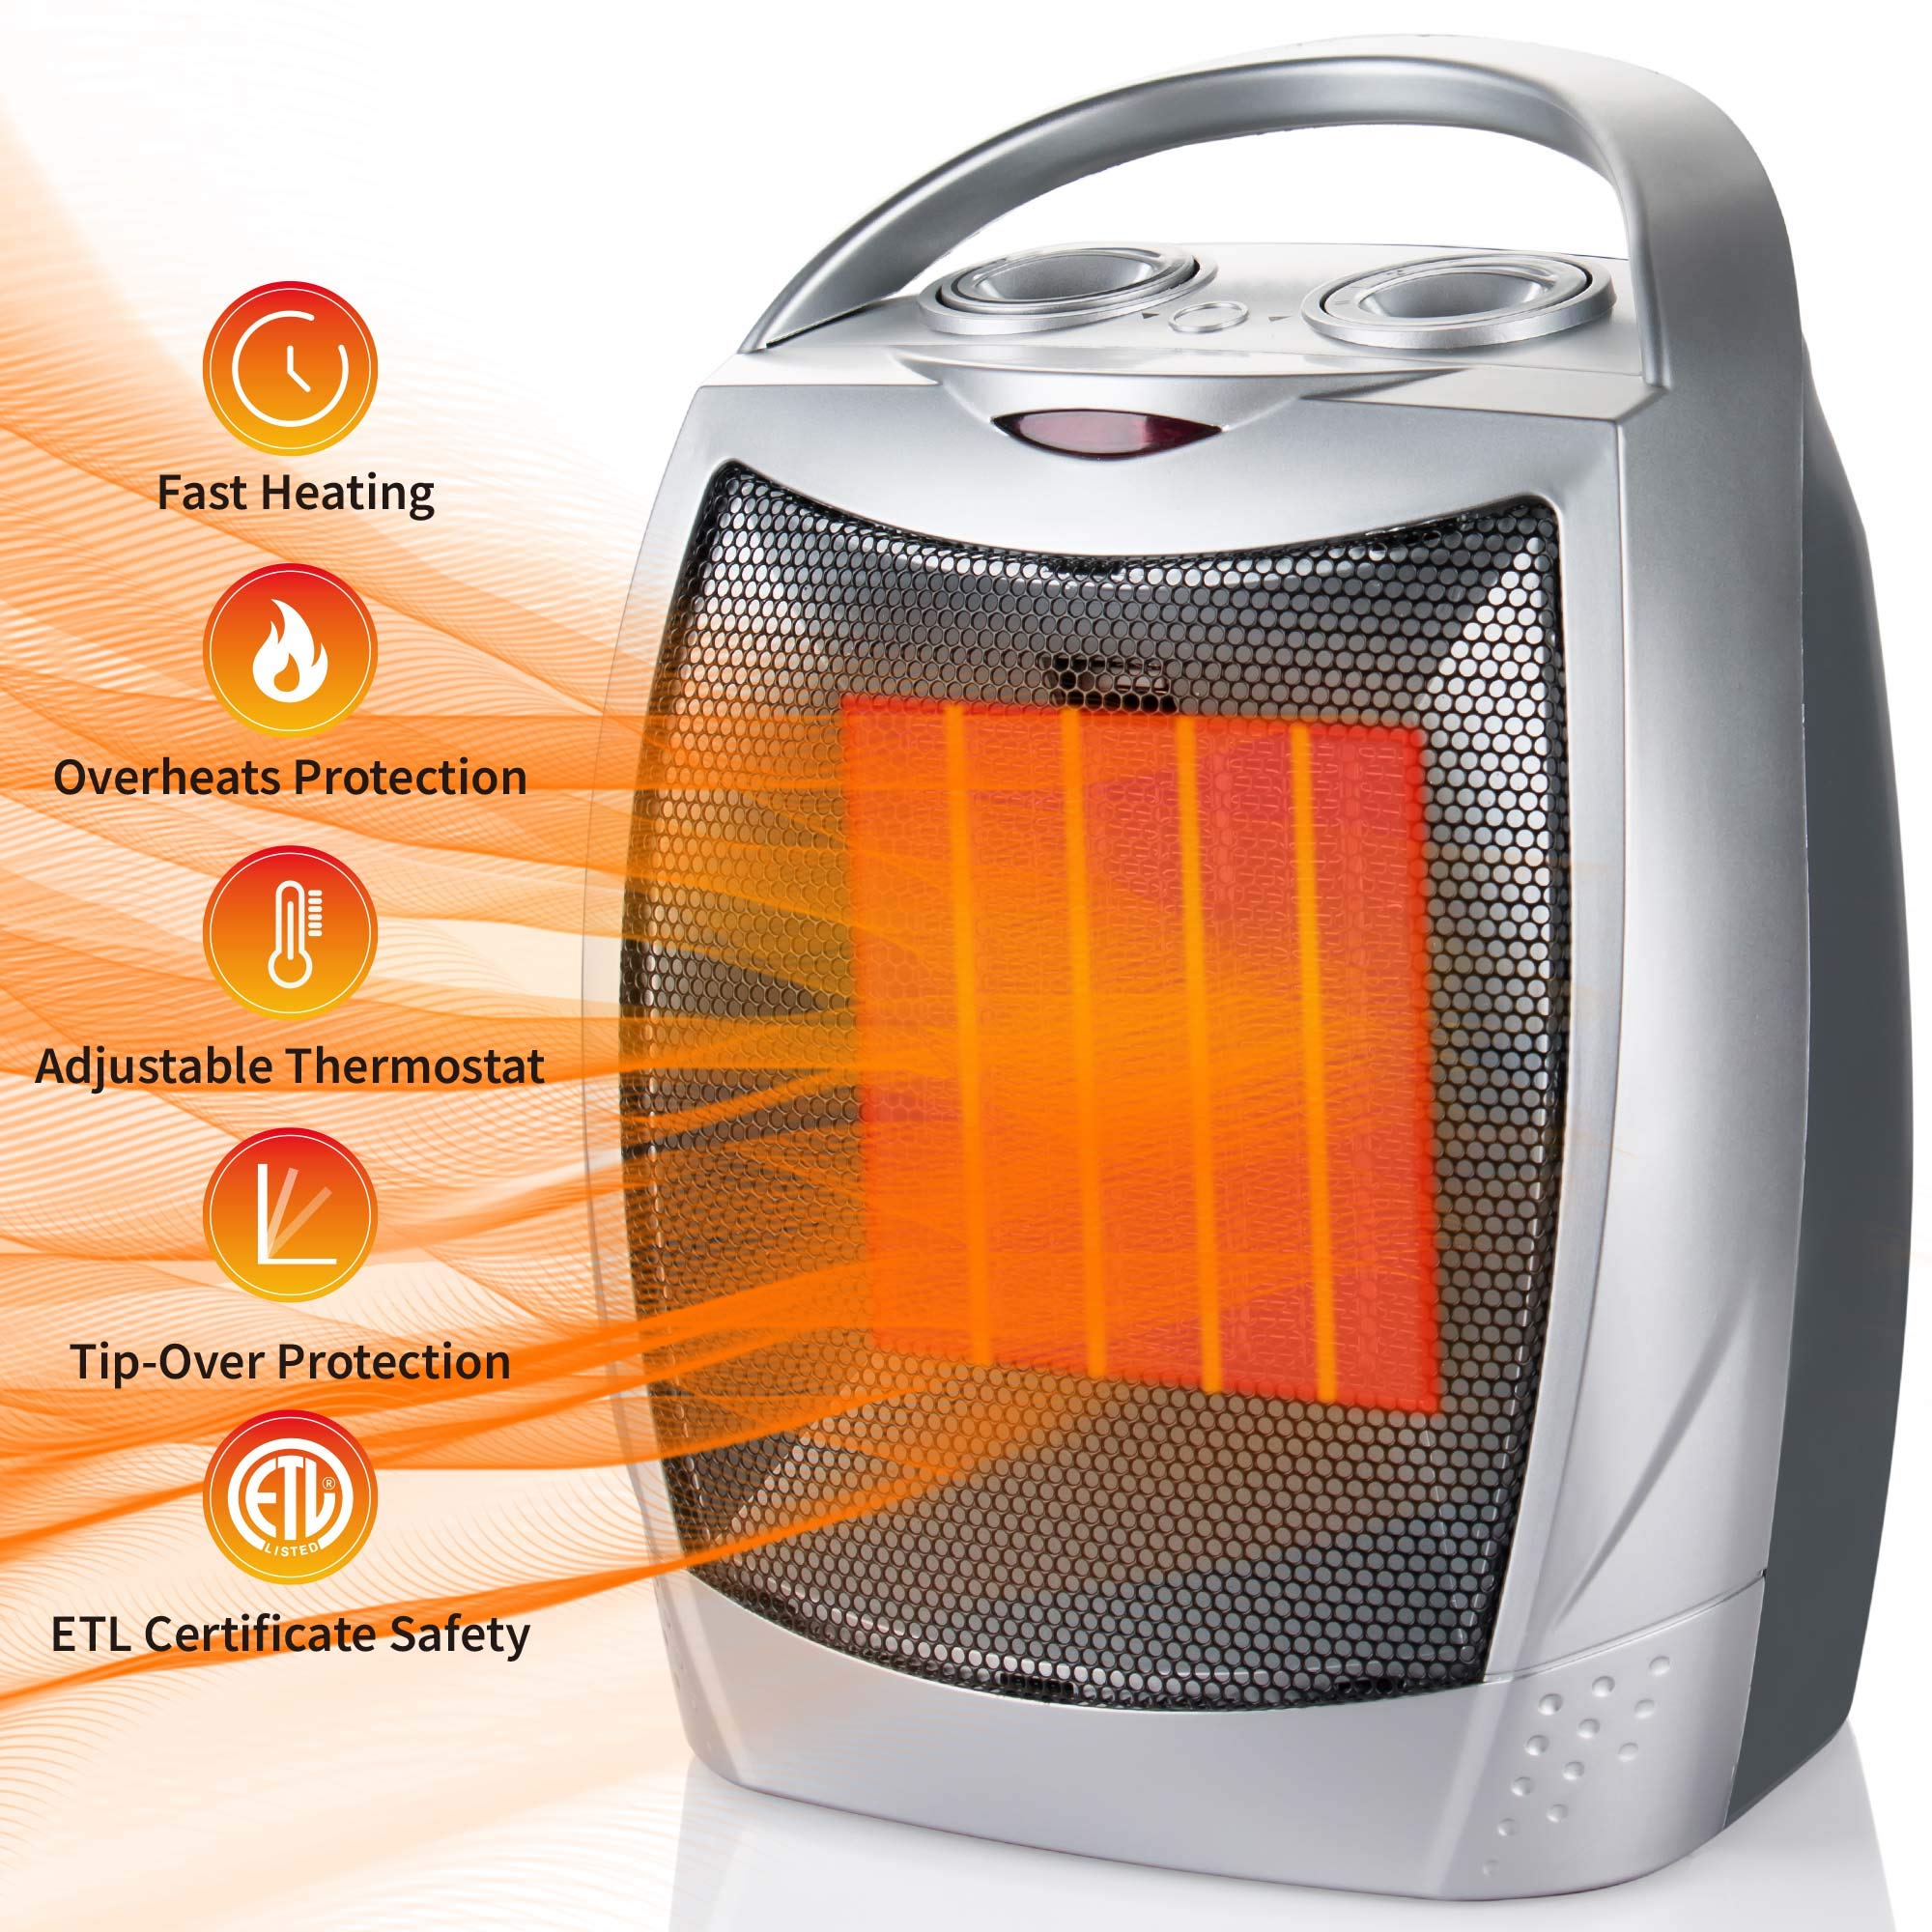 750W/1500W Ceramic Space Heater Portable Electric Heater with Overheats & Tip-Over Protection, Desktop Room Heater with Adjustable Thermostat for Office Home Indoor by Brightown